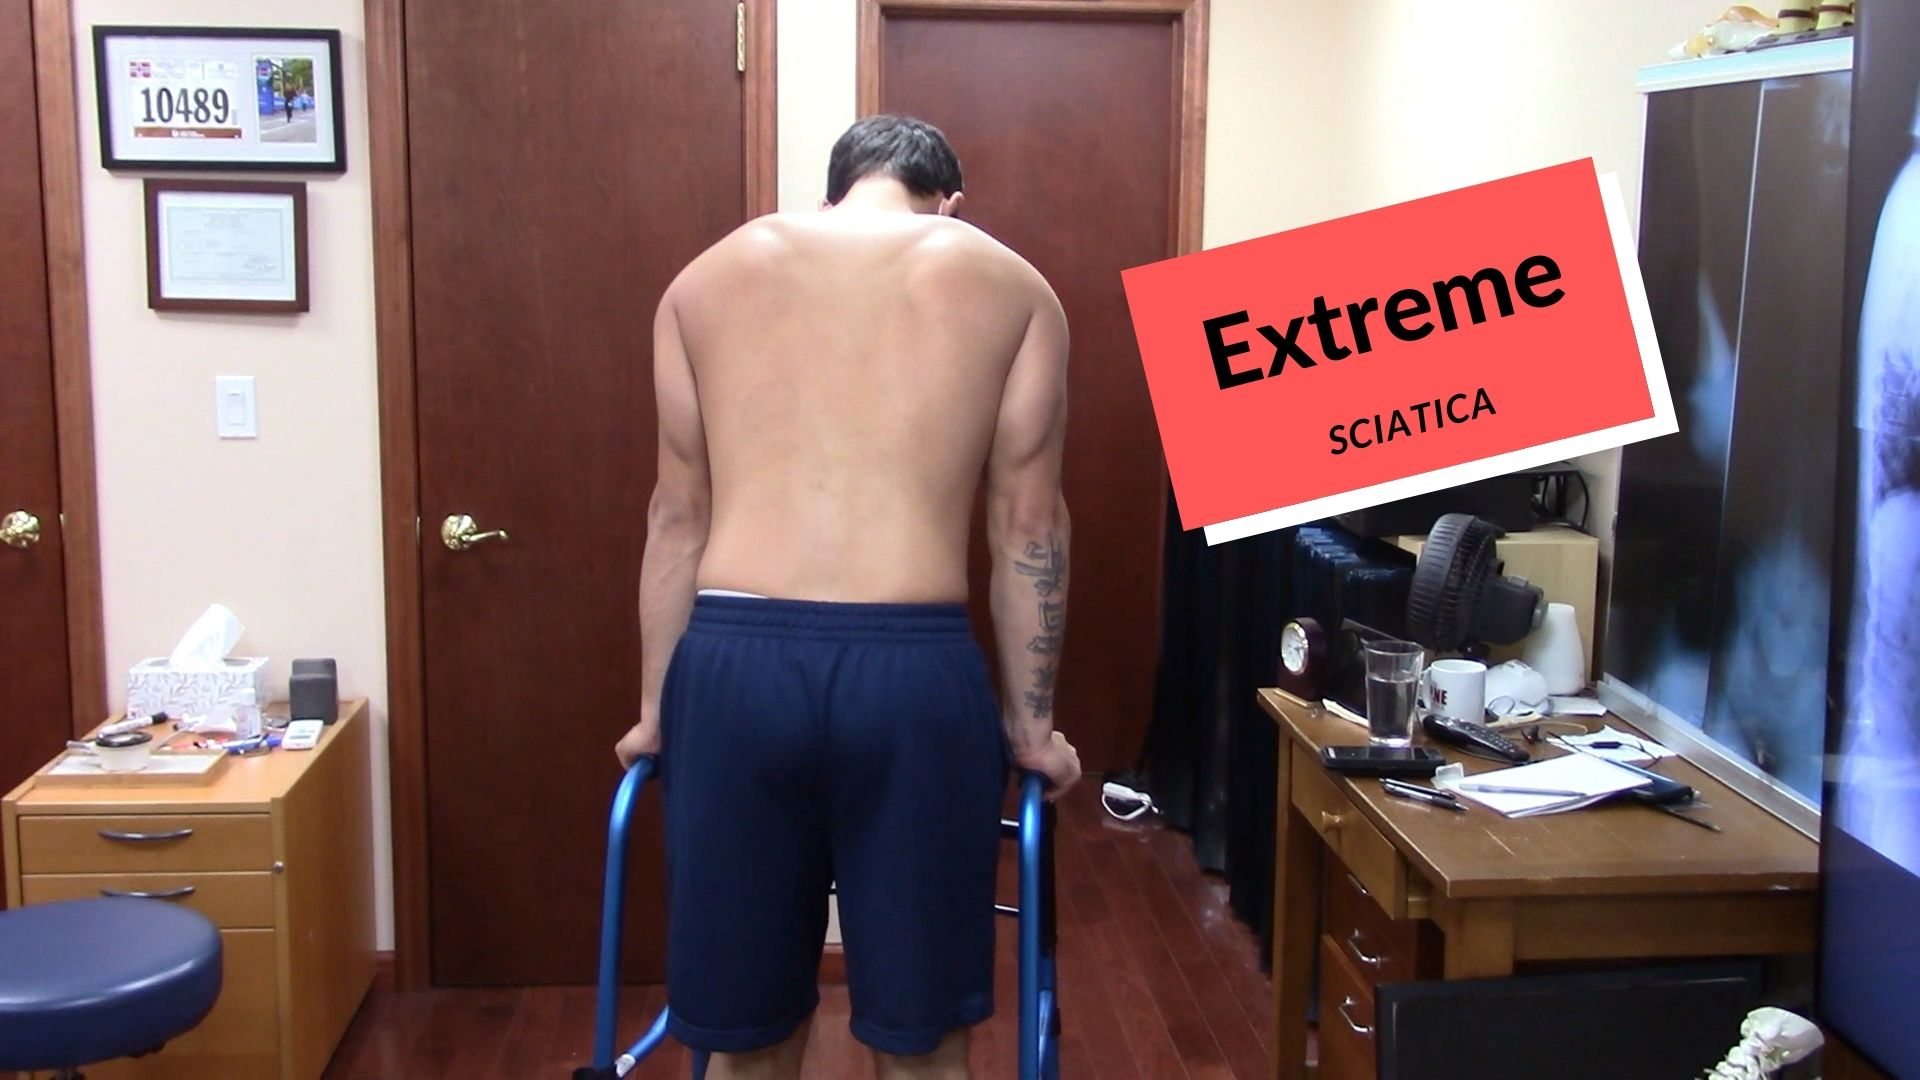 EXTREME Sciatic Pain HELPED by Dr Suh Gonstead Chiropractic NYC